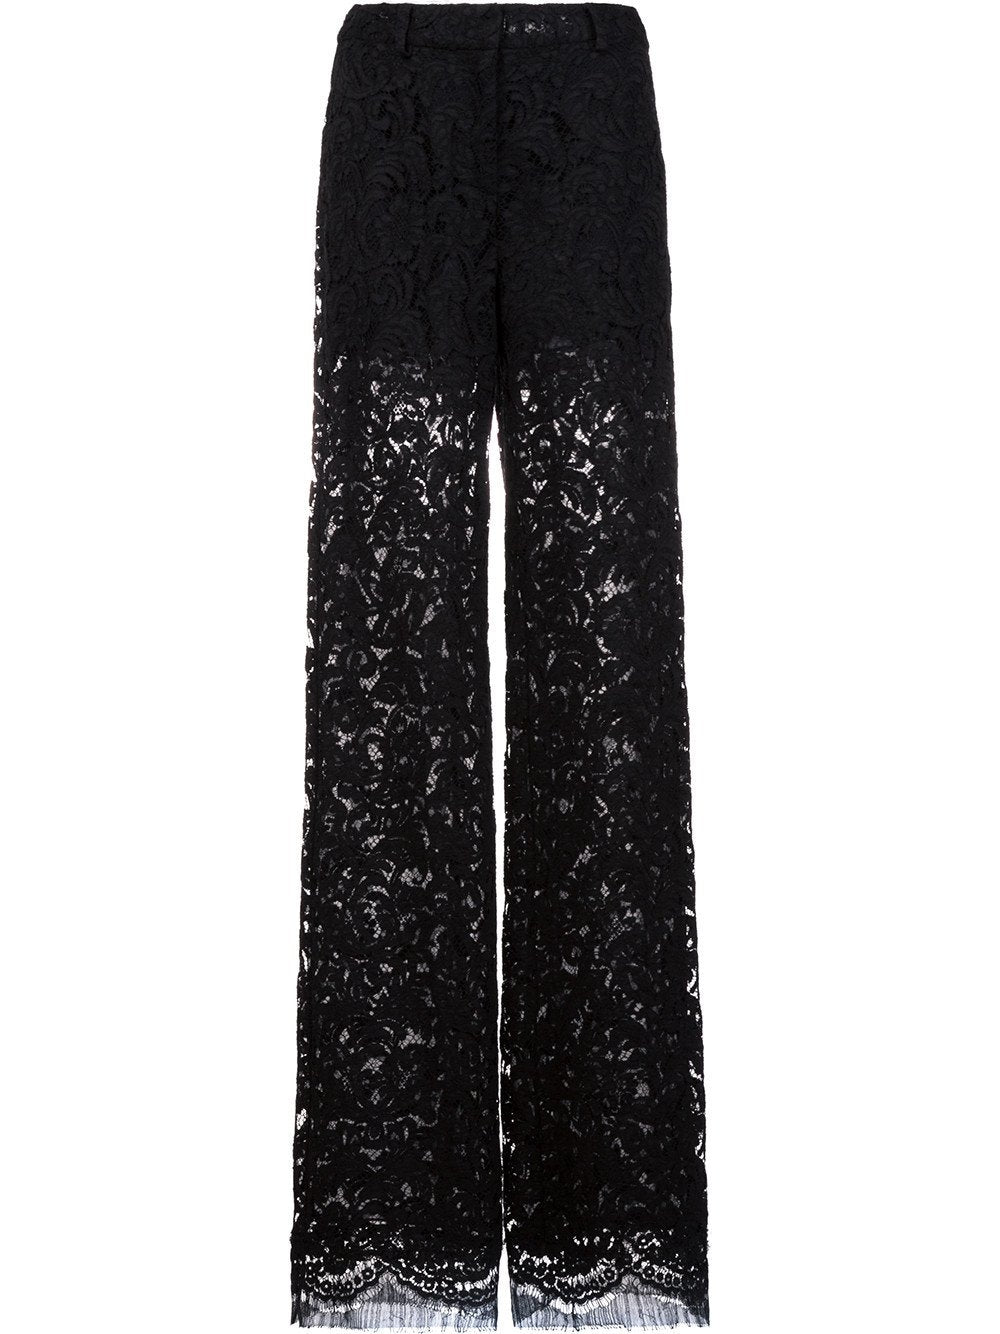 French Corded Lace Wide-Leg Pant